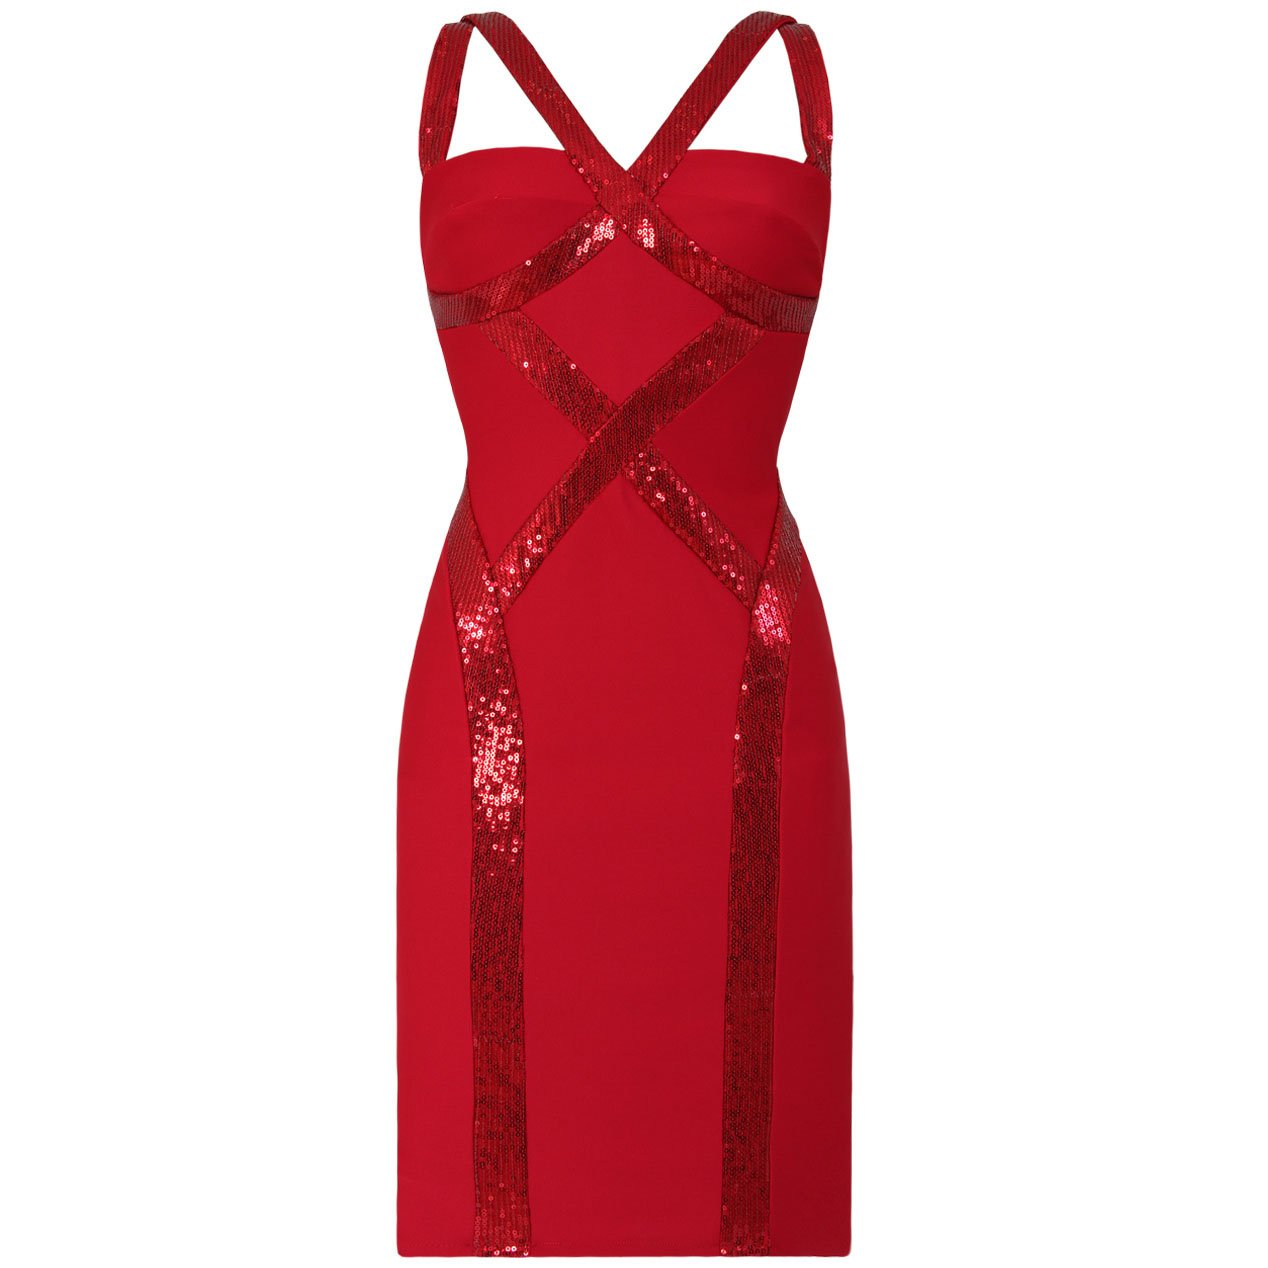 RED SEQUIN BANDAGE EVENING COCKTAIL BODYCON CLUBWEAR MINI PROM PARTY DRESS UK 8, US 4